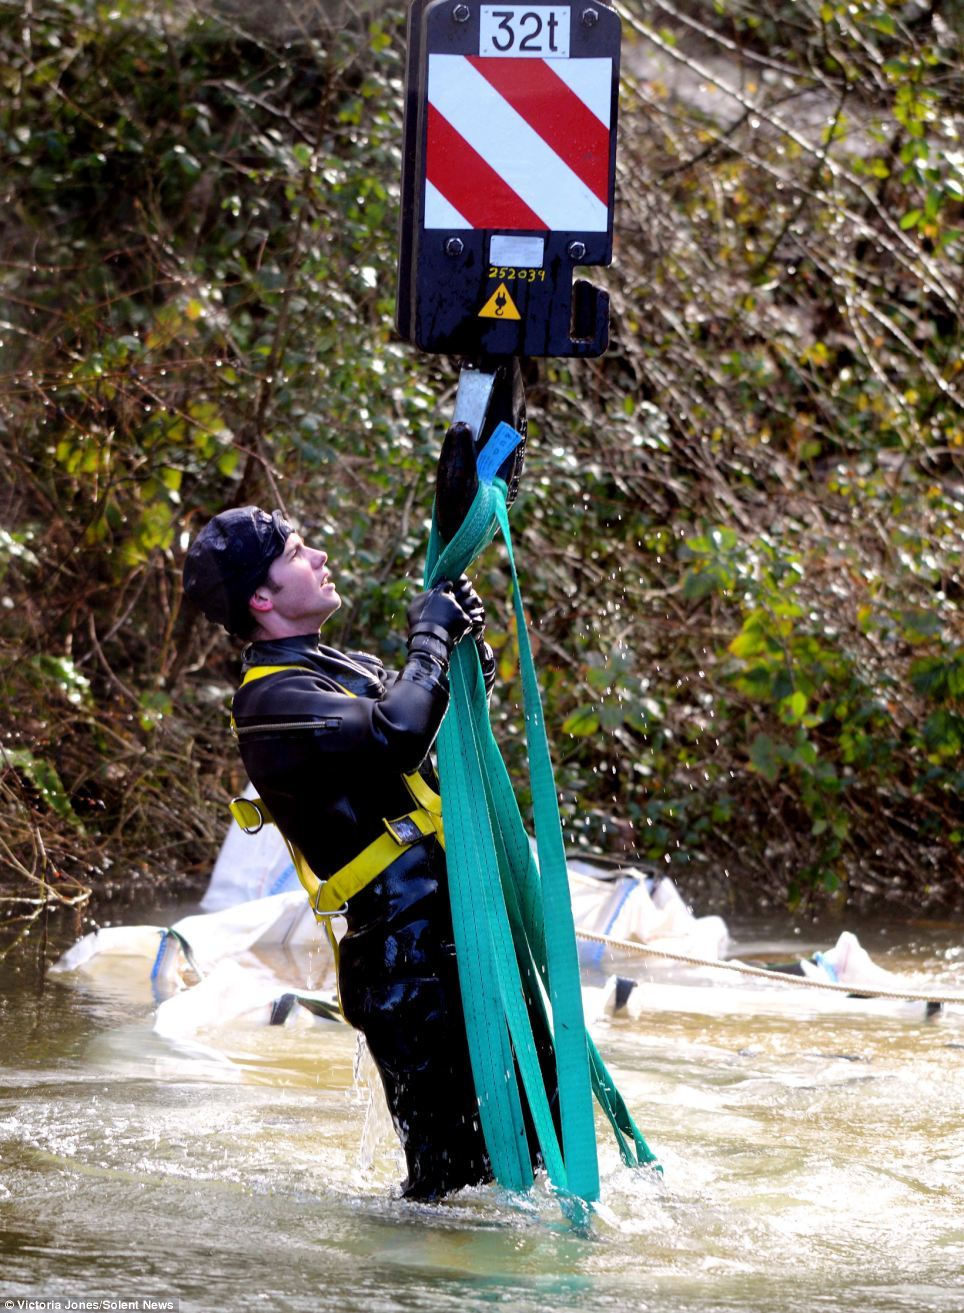 The Environment Agency said it expects levels on slow responding rivers like the Thames, like the Severn, to stay high for a number of days to come